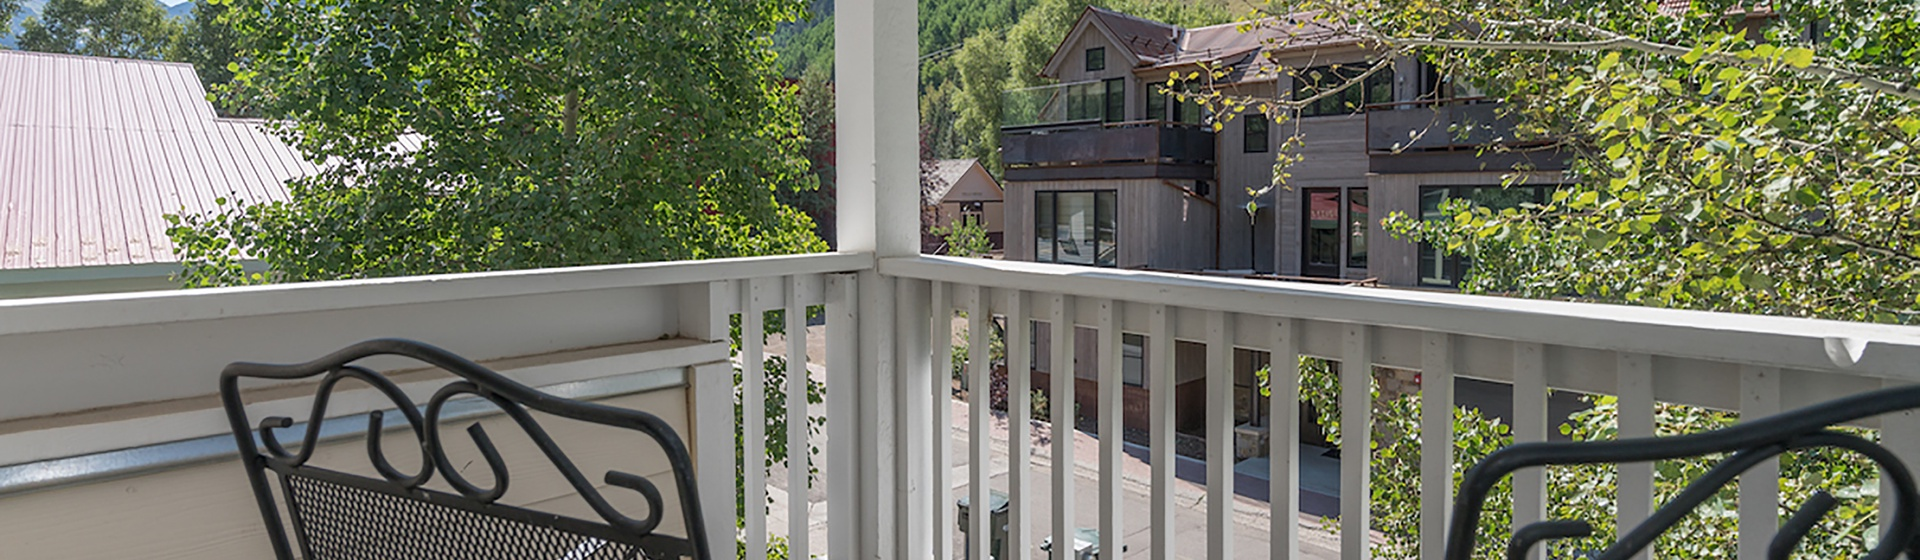 3.02-telluride-south-pacific-new-master-bedroom-private-balcony-v12-Web.jpg